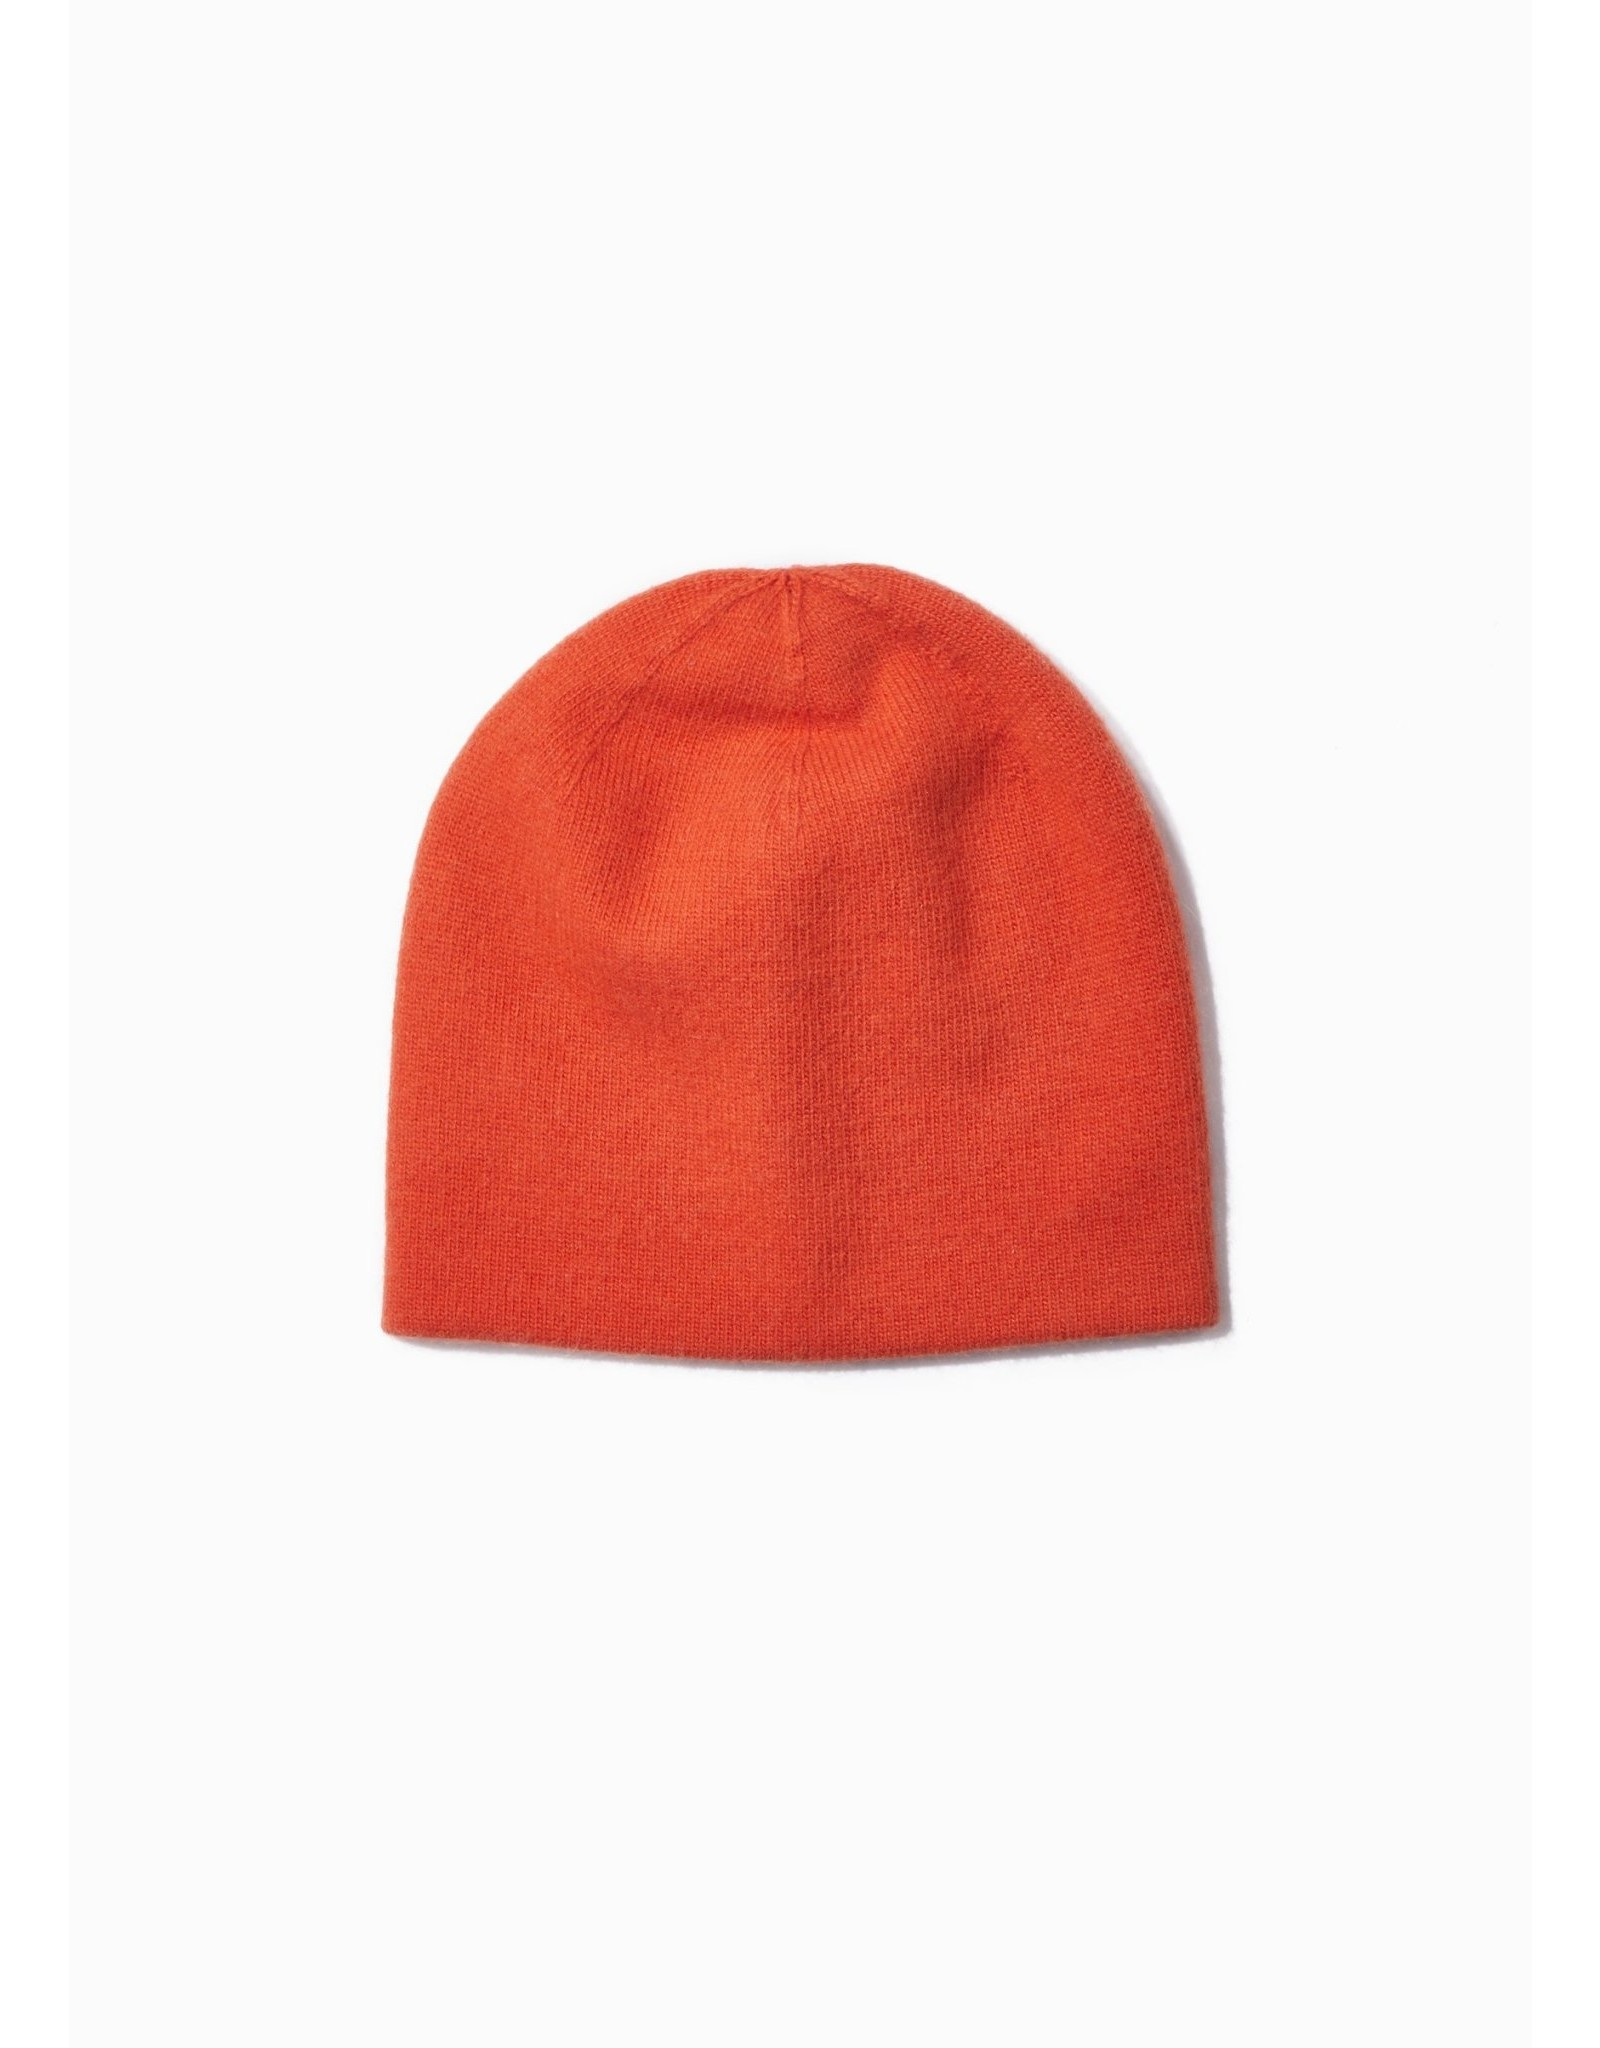 Look By M Cashmere Blended Basic Beanie - Orange